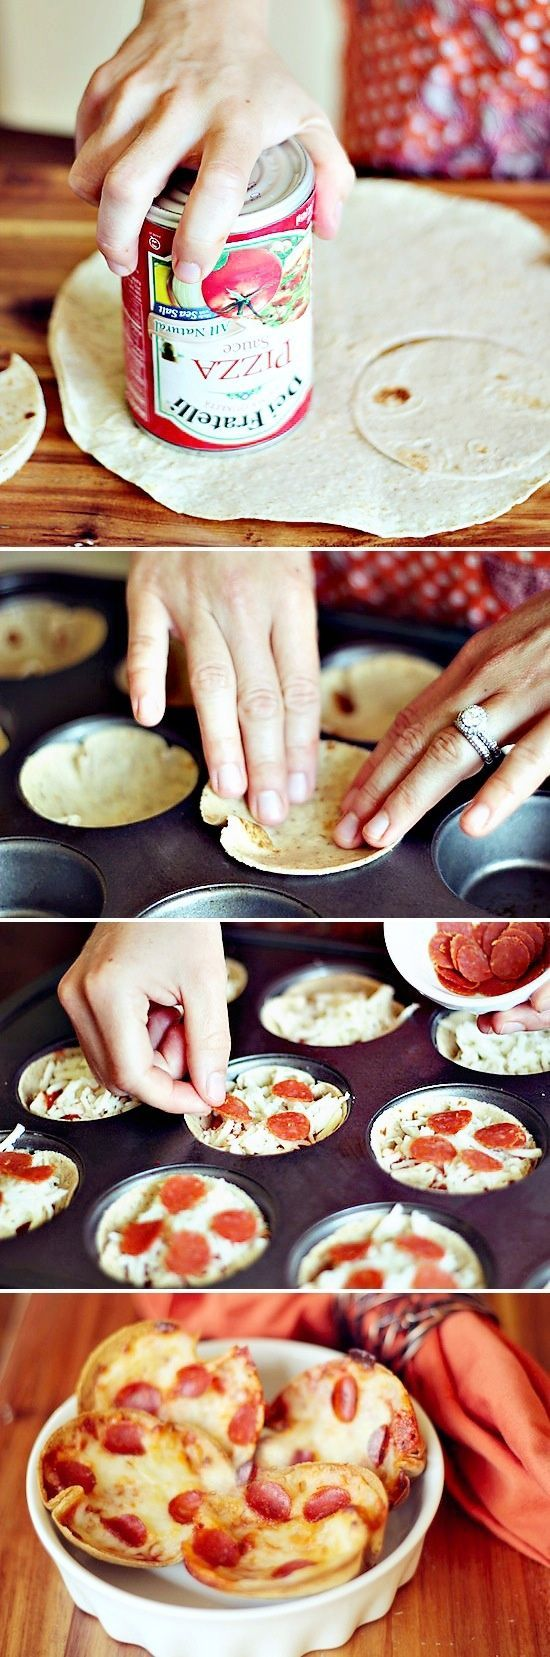 Mini Tortilla Crust Pizzas — super easy to make, can use different ingredients (including low carb tortillas, load up with veggies), great idea!– Fun idea for letting the kids help me cook!